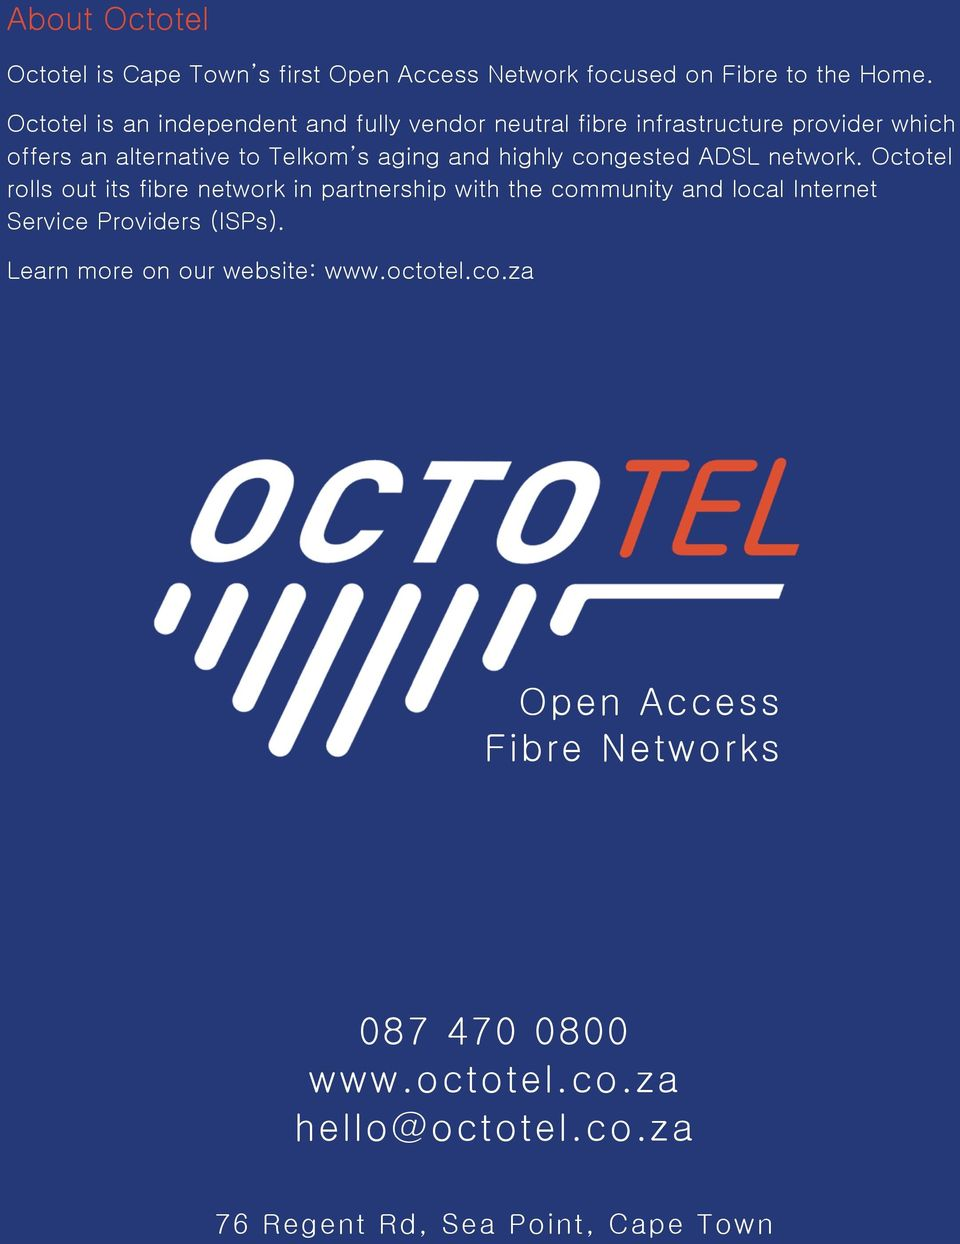 ADSL network. Octotel rolls out its fibre network in partnership with the community and local Internet Service Providers (ISPs).